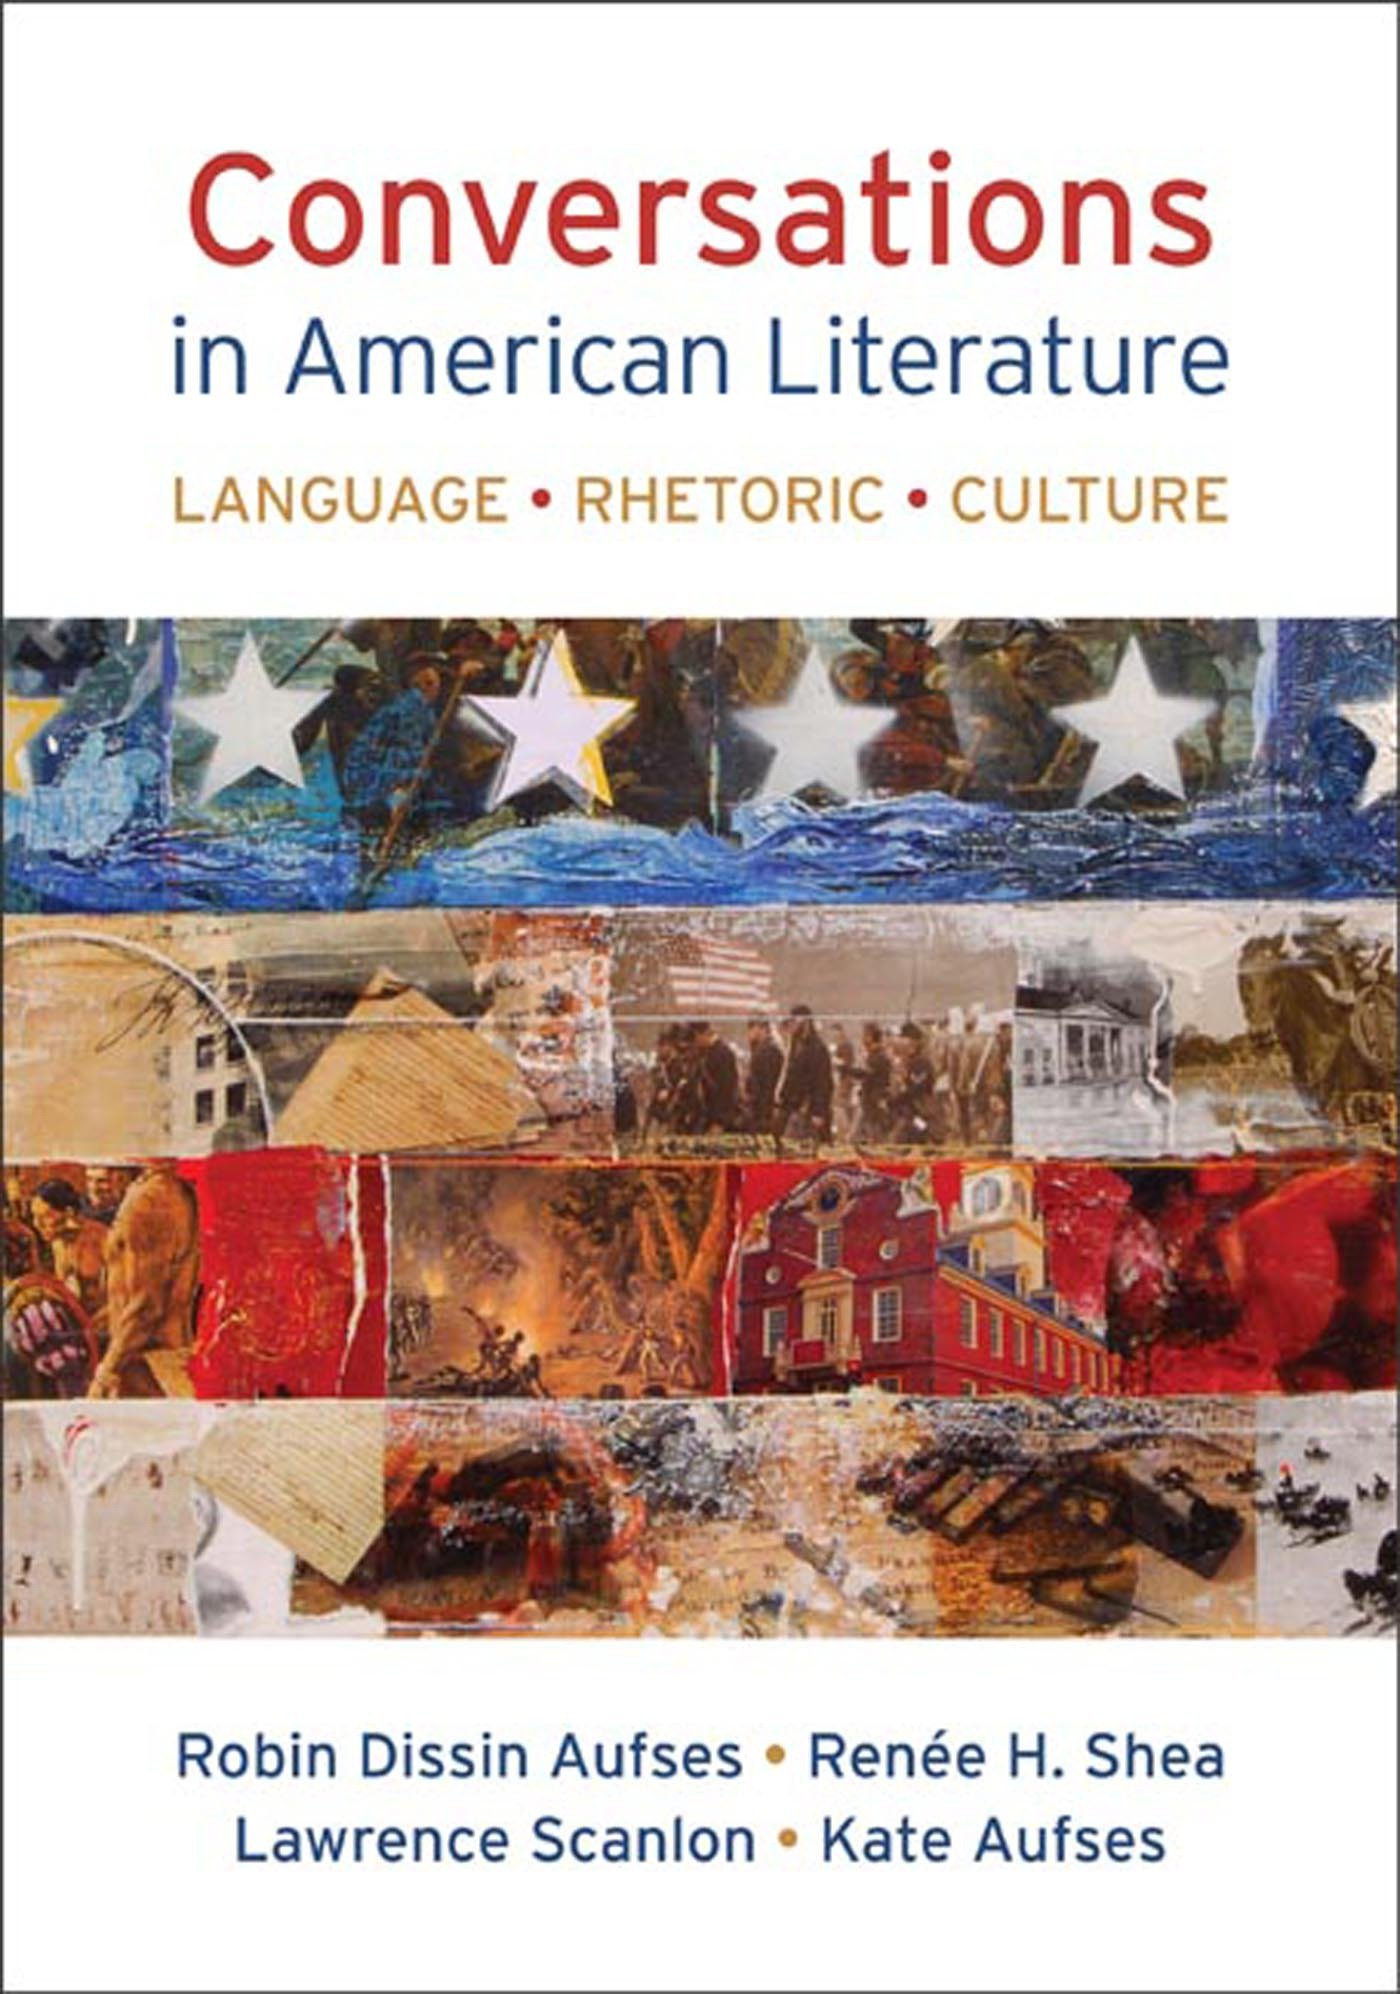 Conversations in American Literature: Language, Rhetoric, Culture by Bedford/St. Martin's